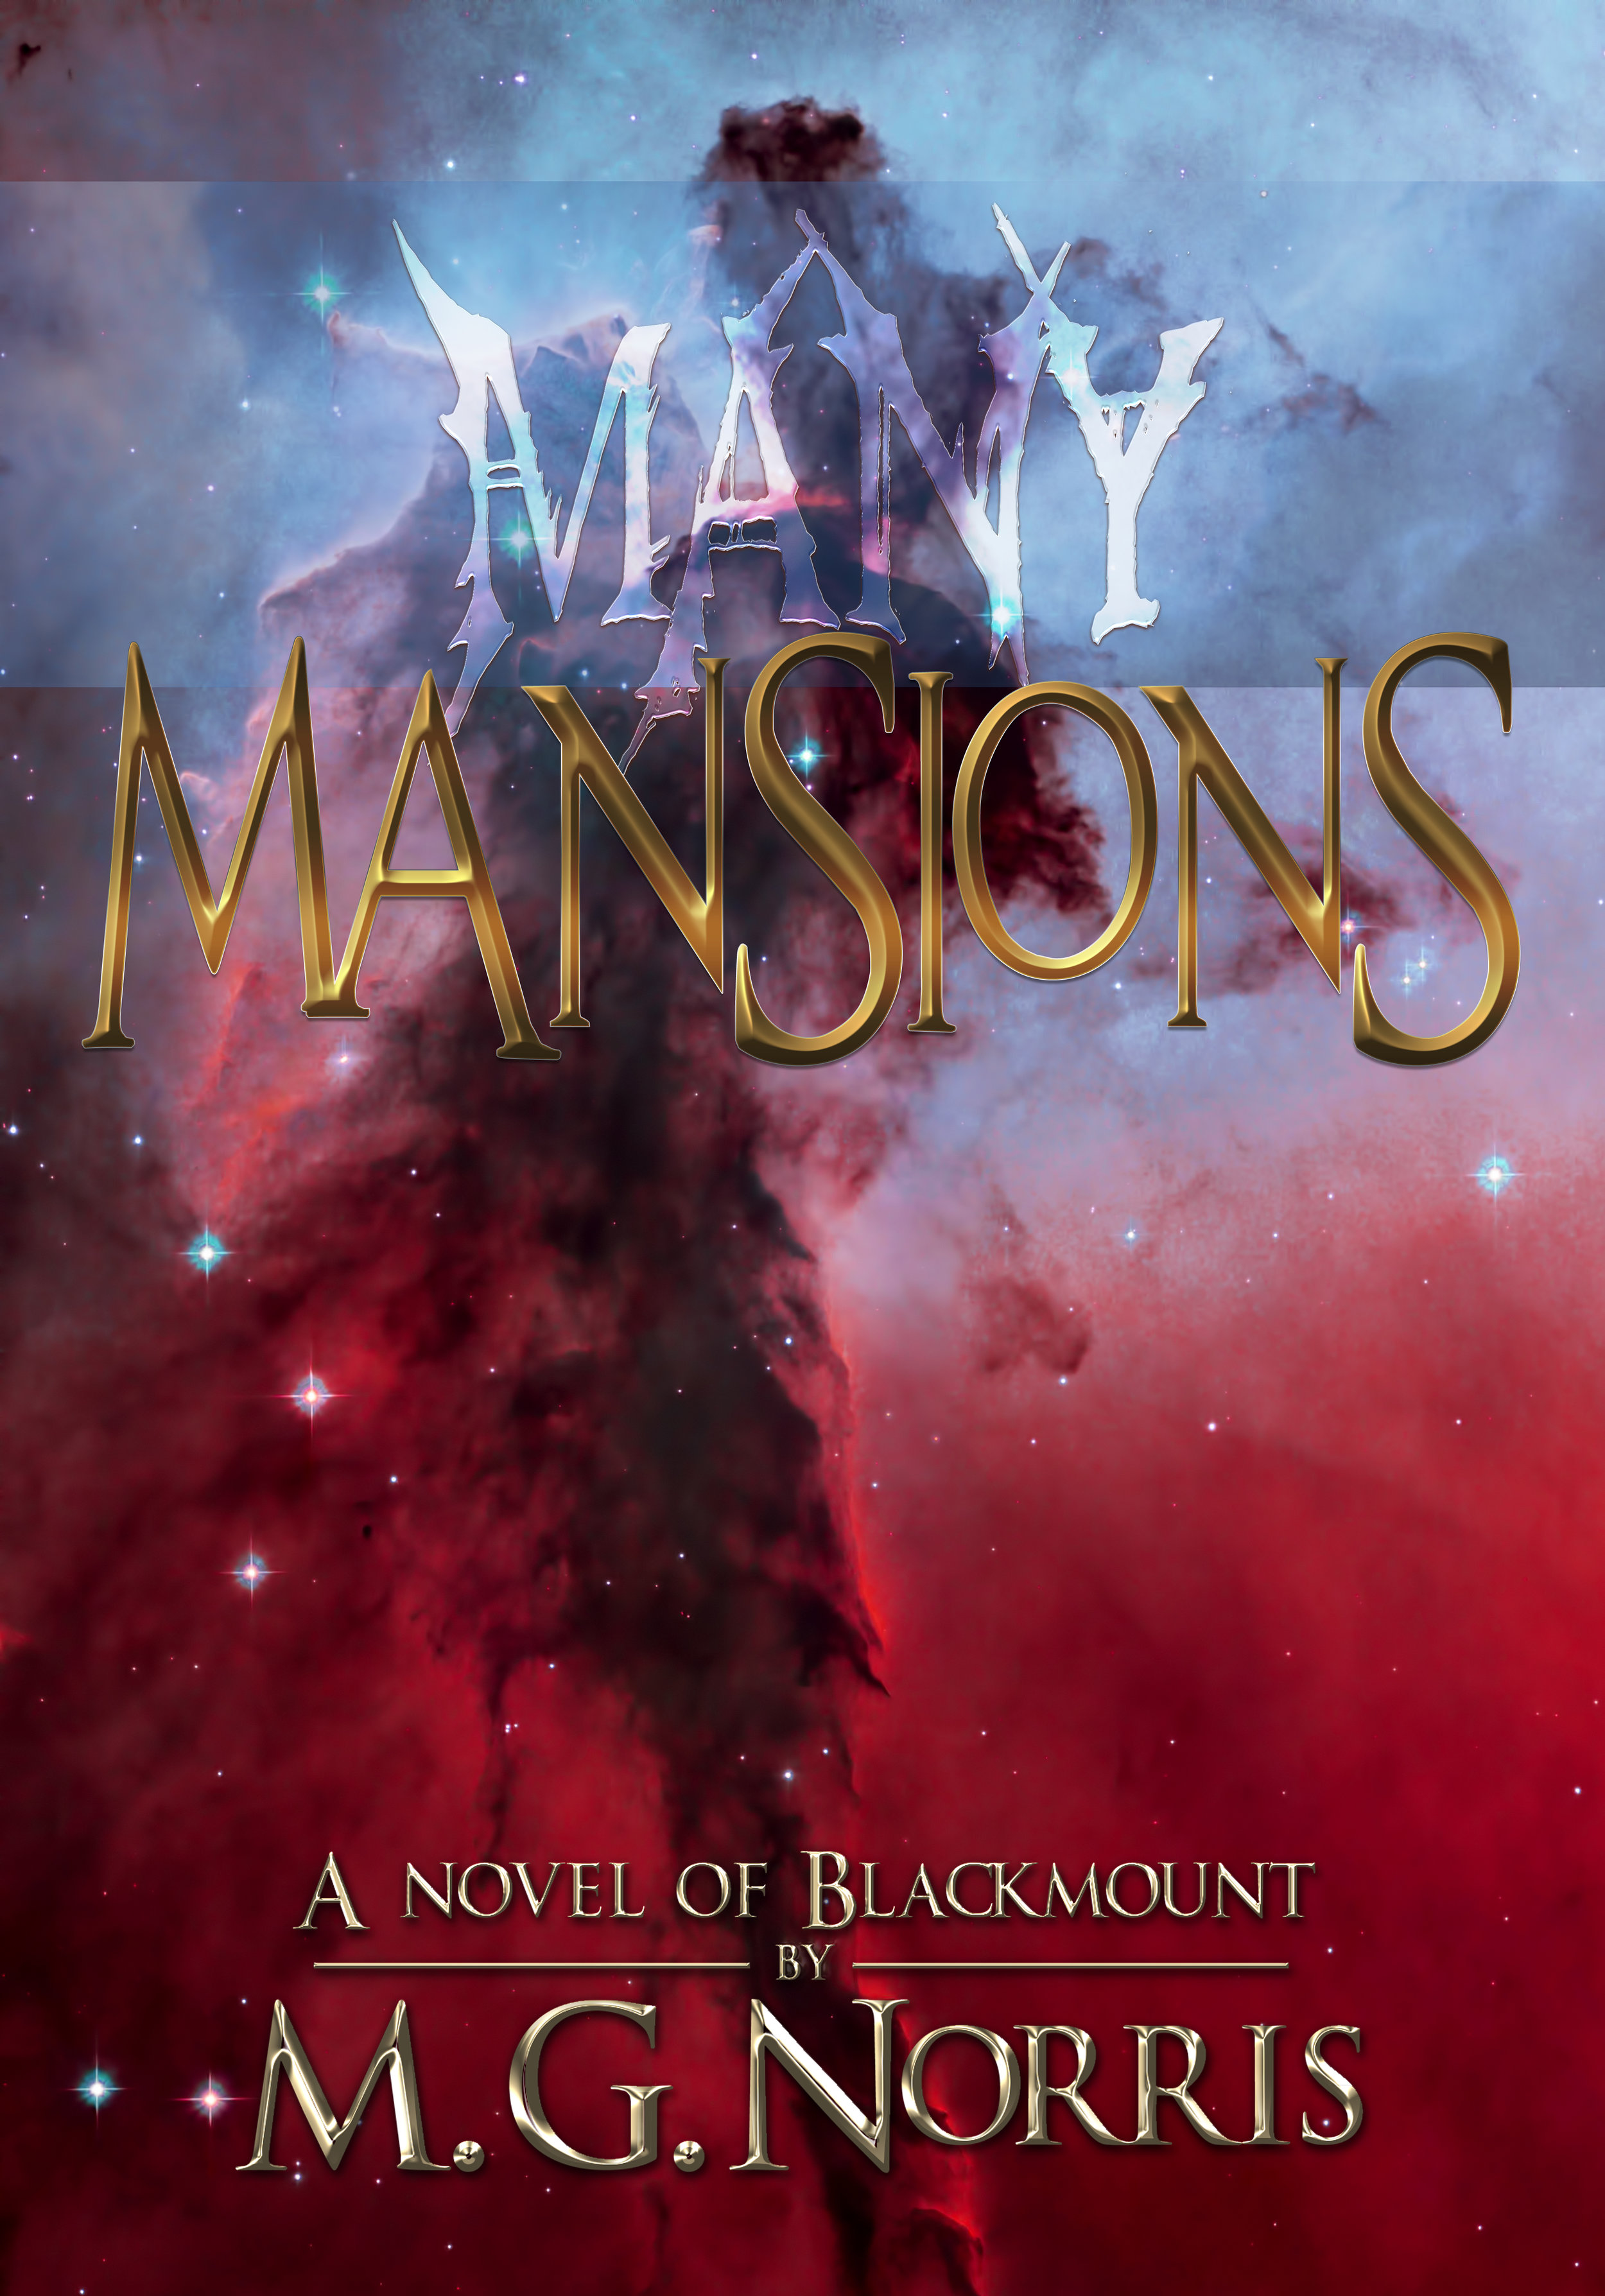 Blackmount Book 5 - Many Mansions  release date - tbd